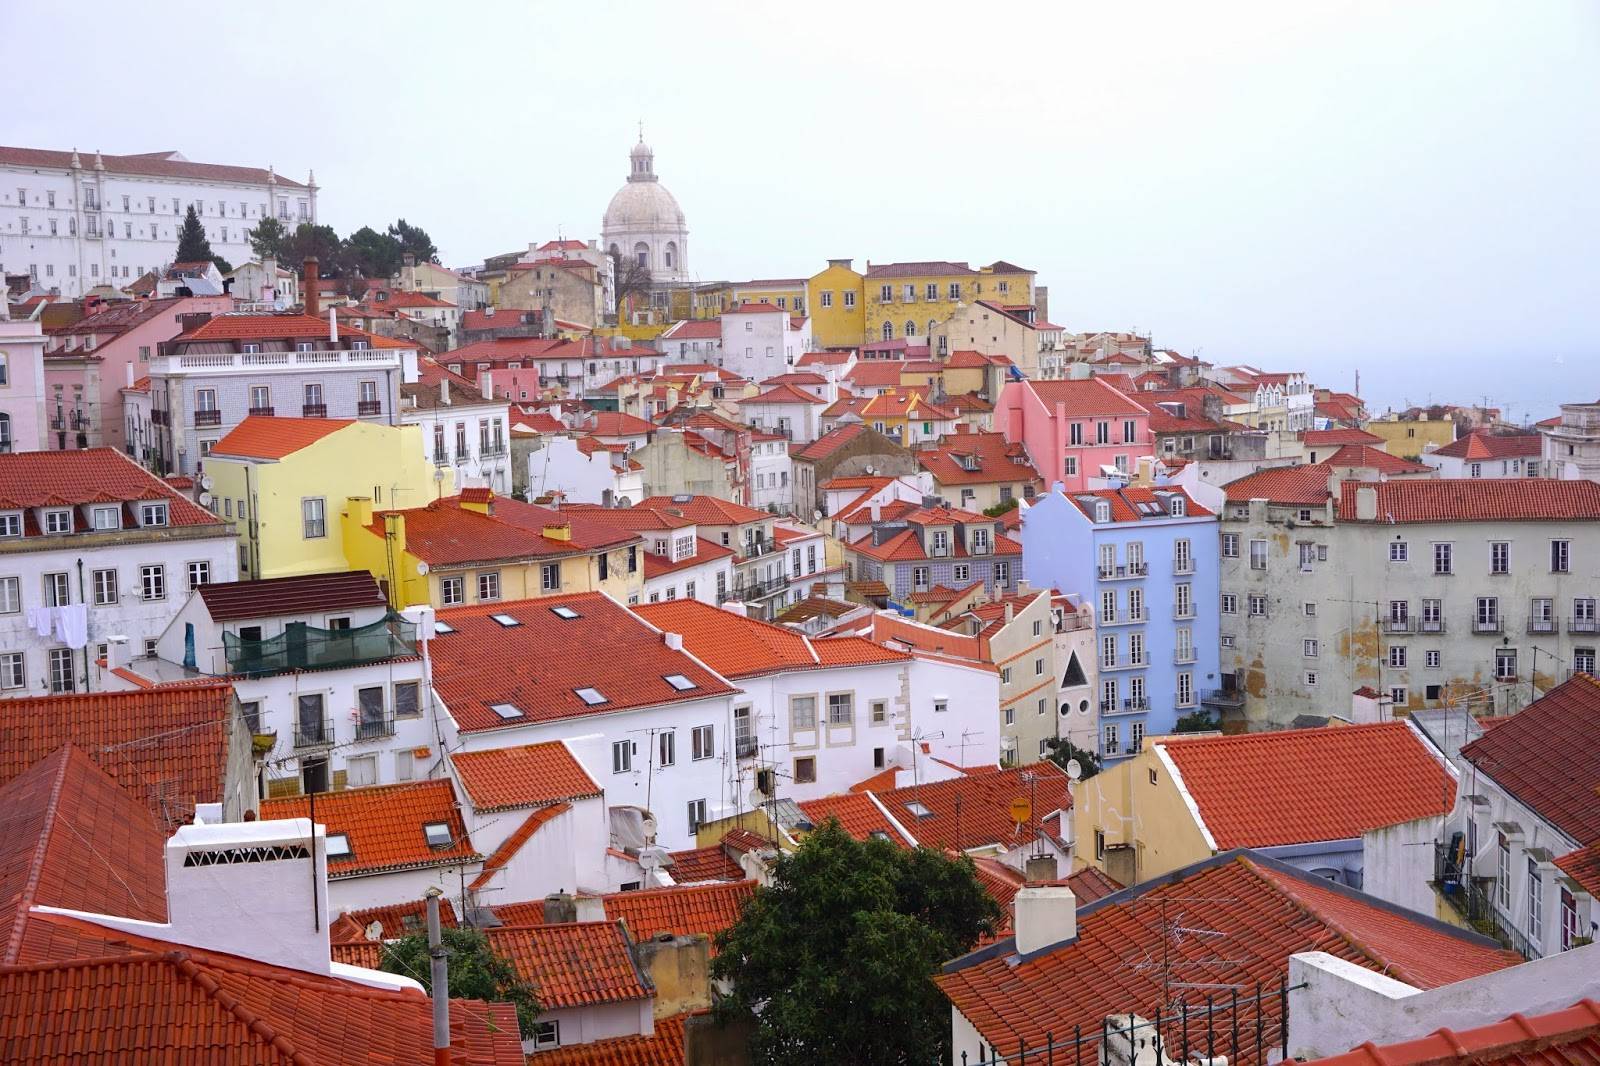 The view from Miradouro Portas do Sol in Lisbon on an overcast rainy day